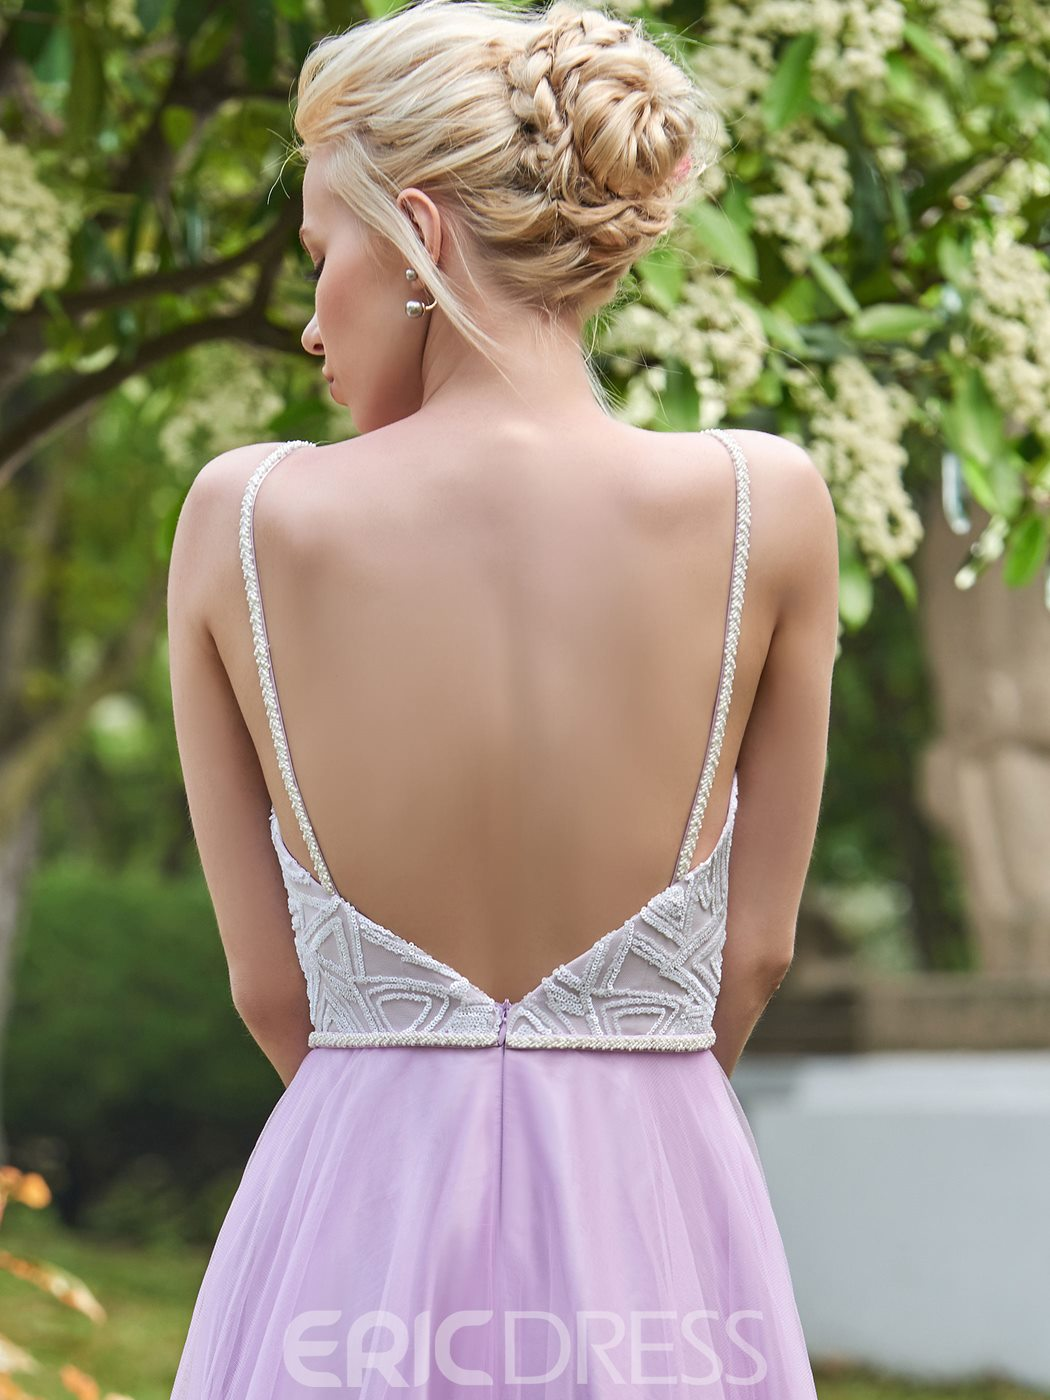 Ericdress Beautiful Spaghetti Straps Backless Long Wedding Dress